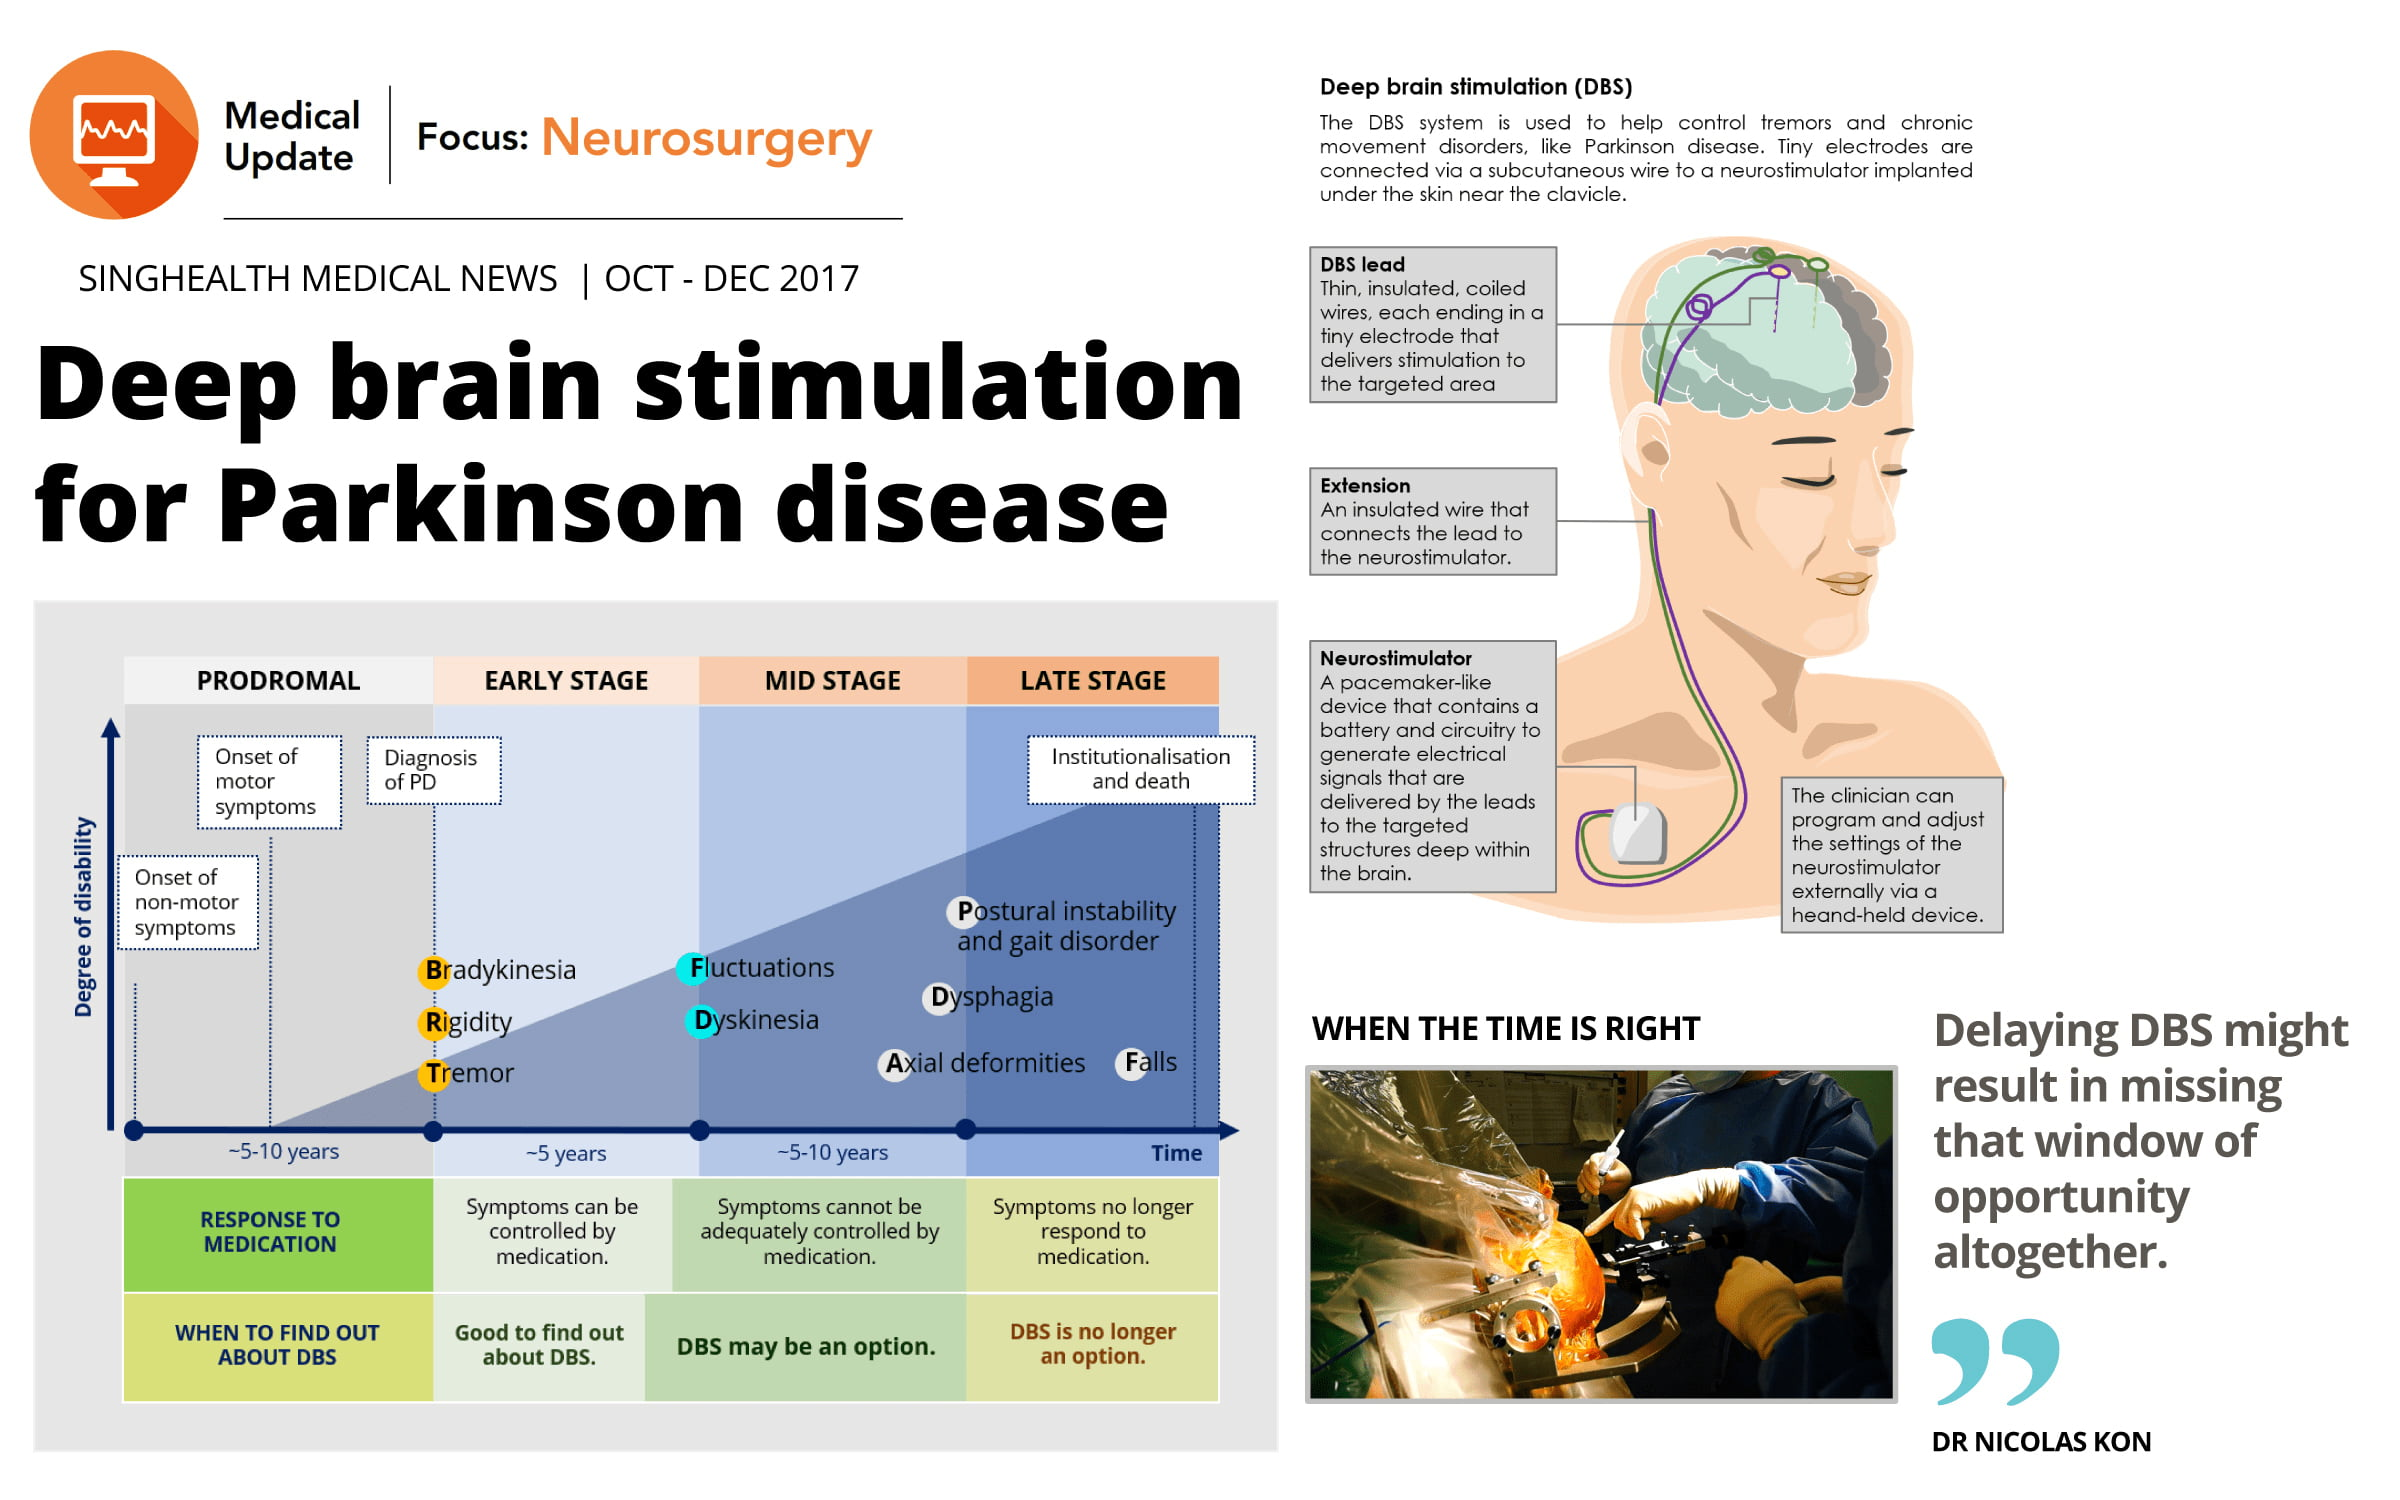 Snapshot of newsletter describing deep brain stimulation for Parkinson disease